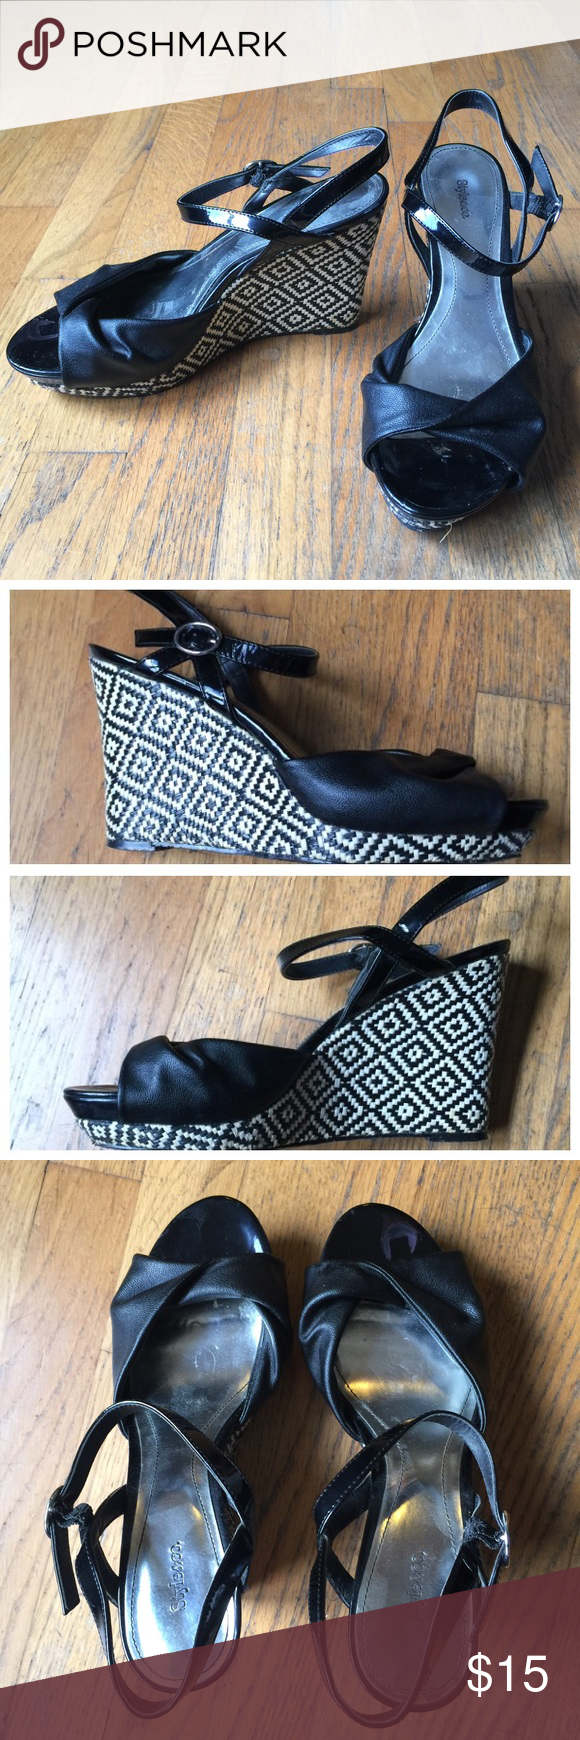 """STYLE & CO. Black Platform Tribal Wedge Sandals So cute!  STYLE & CO. Black  Platform Tribal Wedge Sandals.  Black man made upper.  4"""" back & 1/2"""" front platform heels.  NOTE:  Right shoe toe has nail polish & tip of bottom rubber sole has missing tip... see pics. Style & Co Shoes Wedges"""